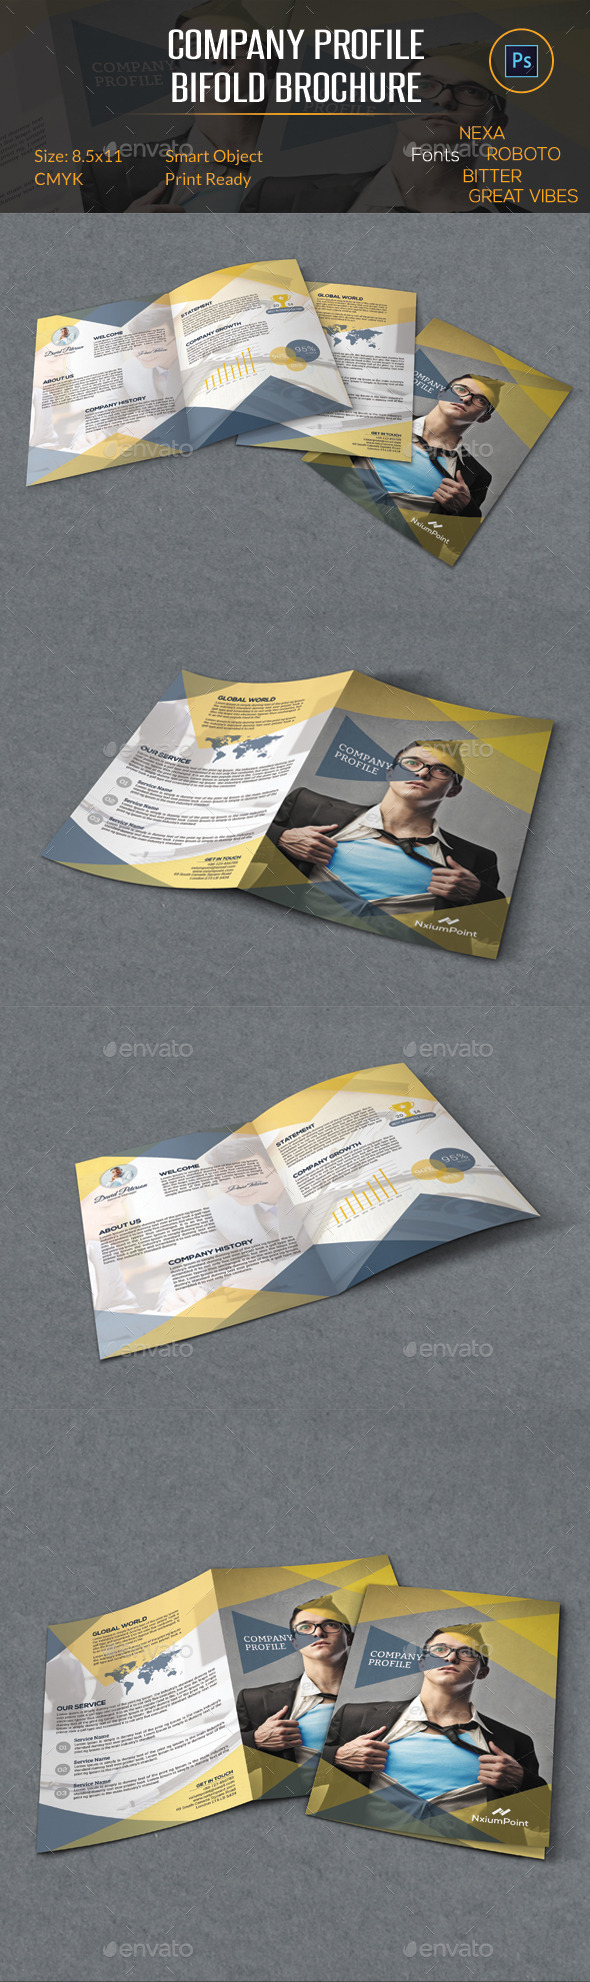 GraphicRiver Company Profile Bifold Brochure 10292391